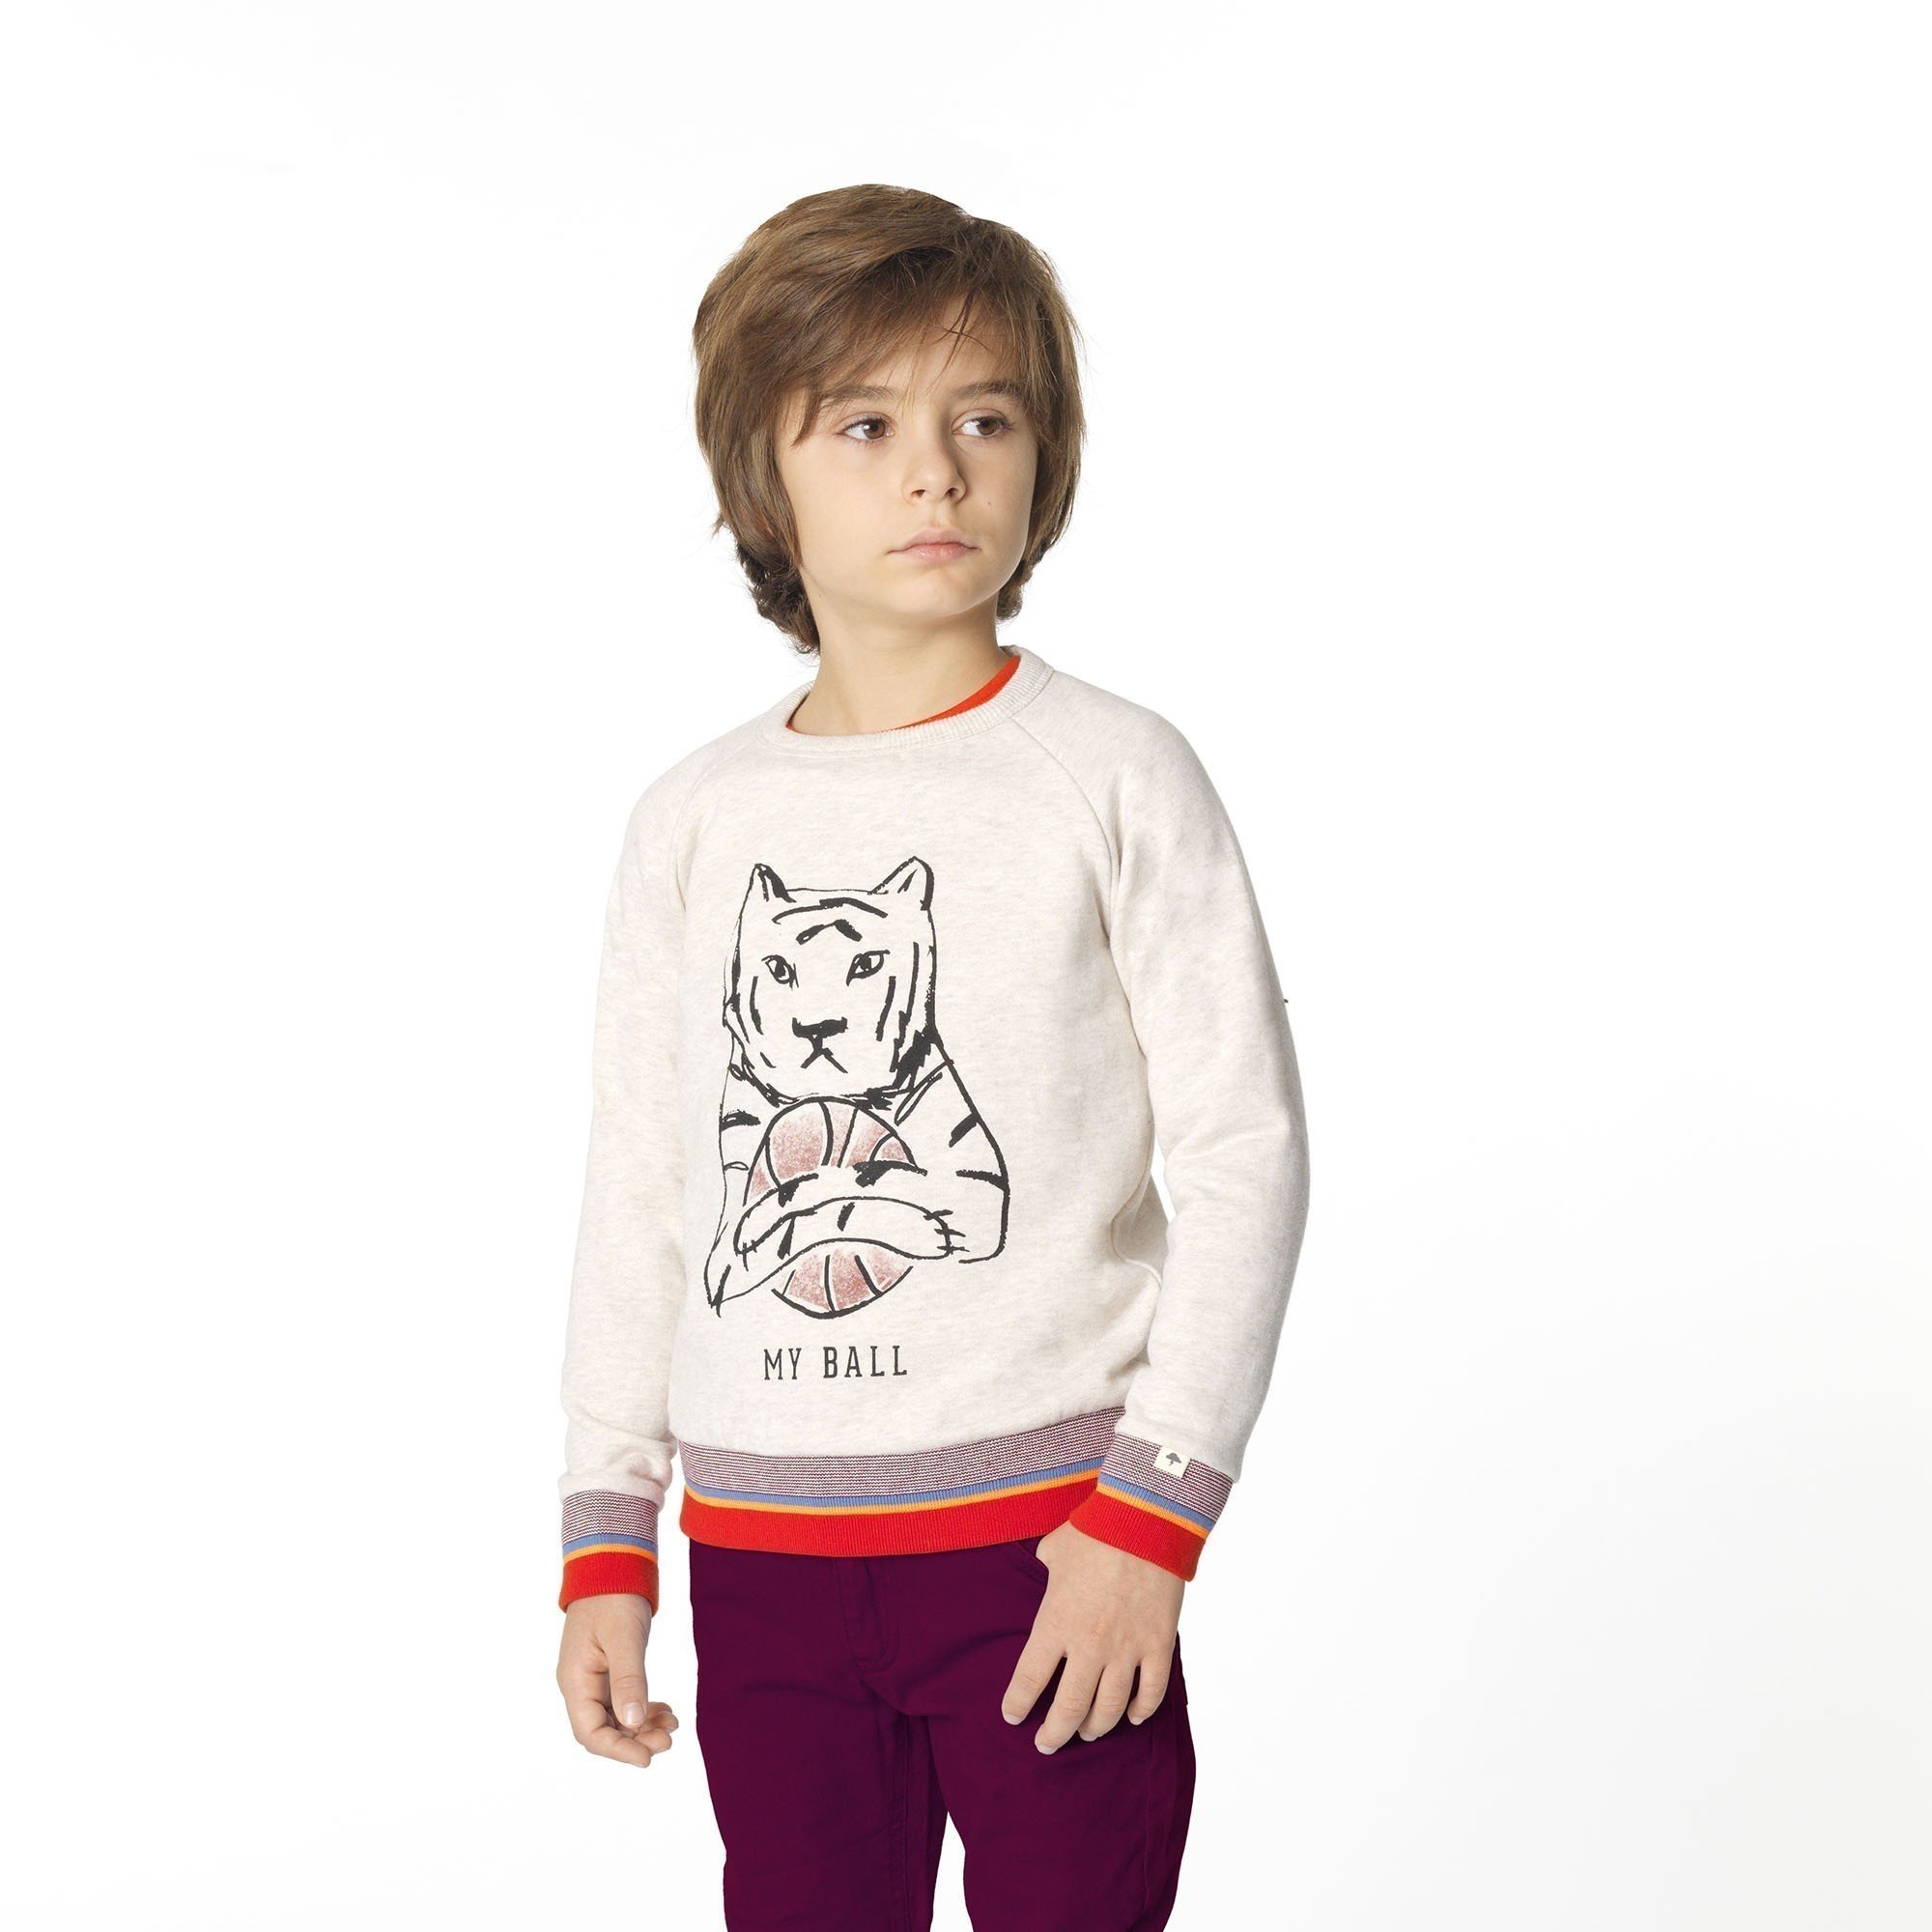 Sweatshirt with novelty print BILLYBANDIT for BOY